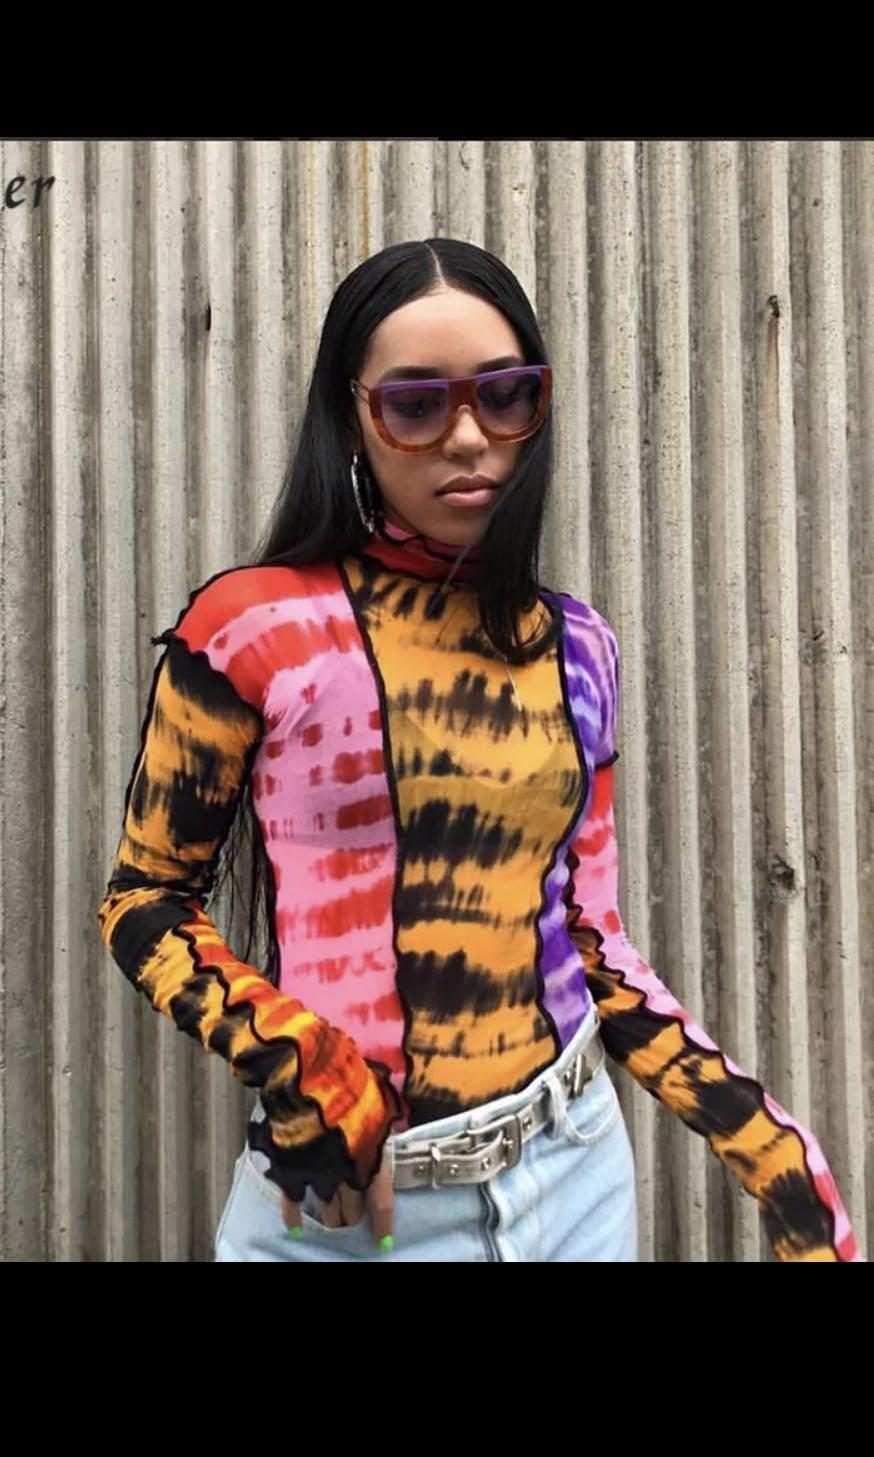 🏜Colourful orange, purple, yellow, pink and black long sleeve tie dye colourblock top with ruffles and outside scalloped edging/ stitching🏜